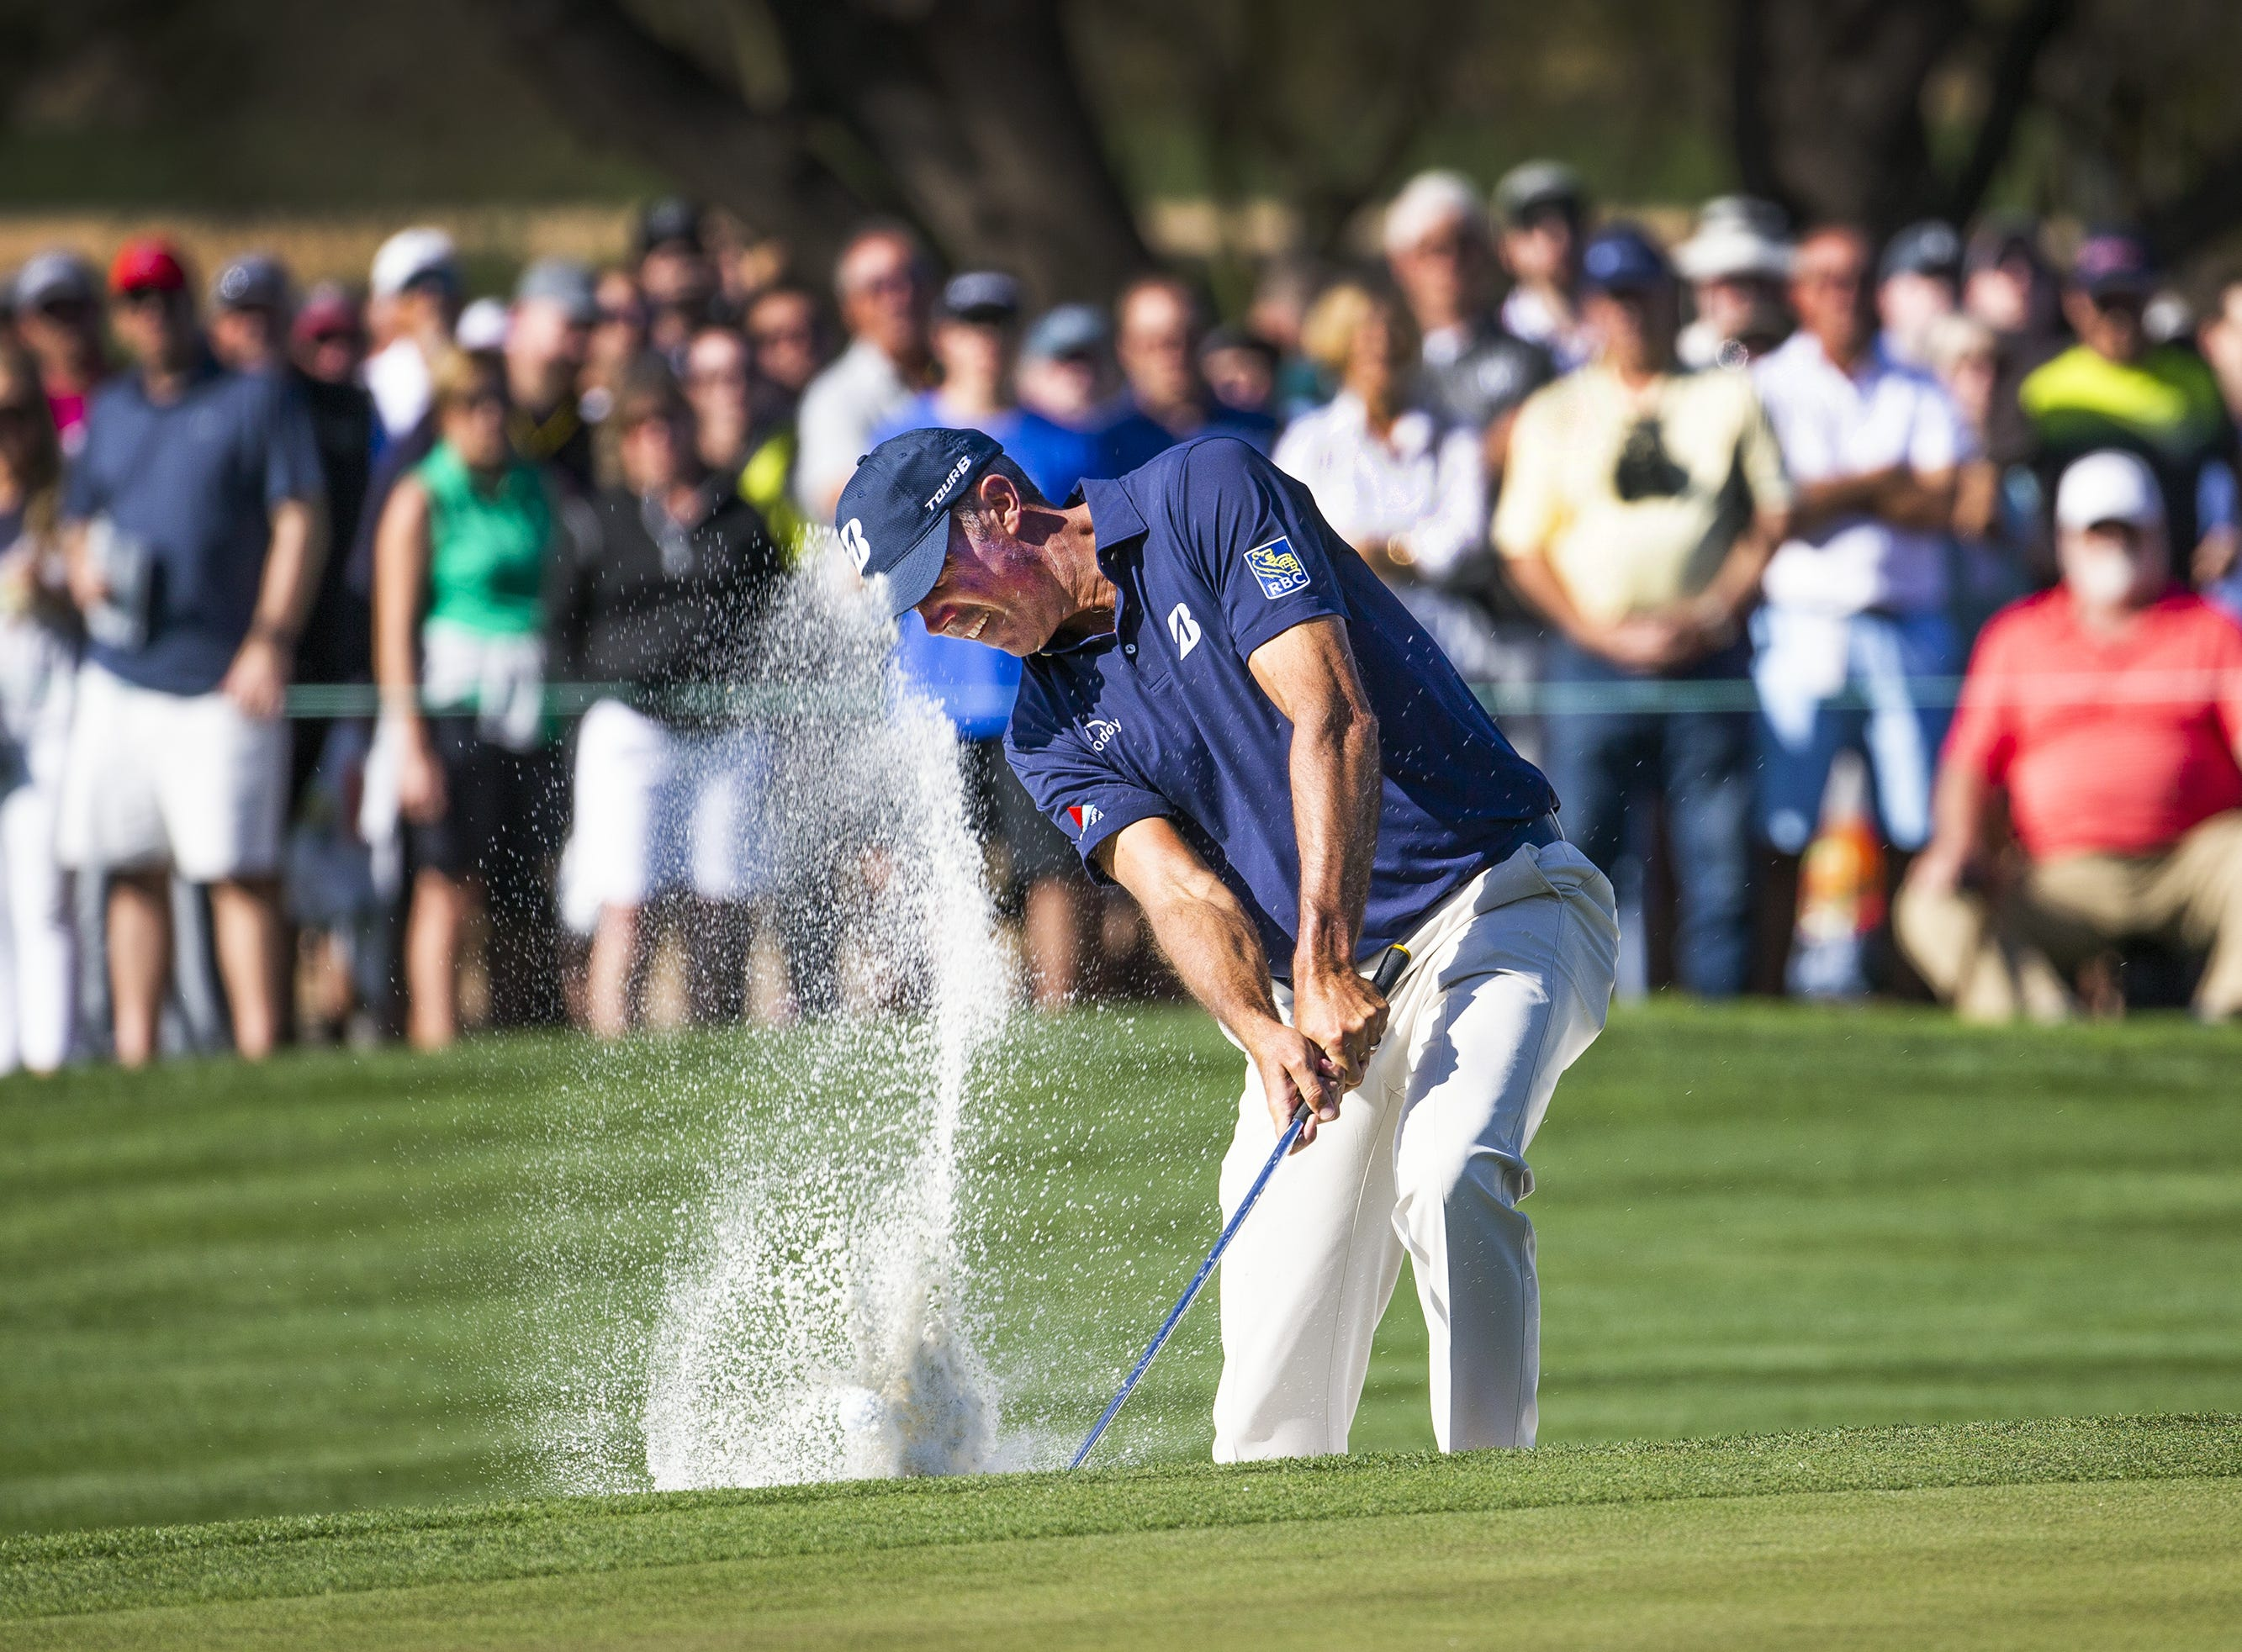 Matt Kuchar hits from a bunker on the 9th hole during the second round of the Waste Management Phoenix Open at the TPC Scottsdale, Friday, February 1, 2019.